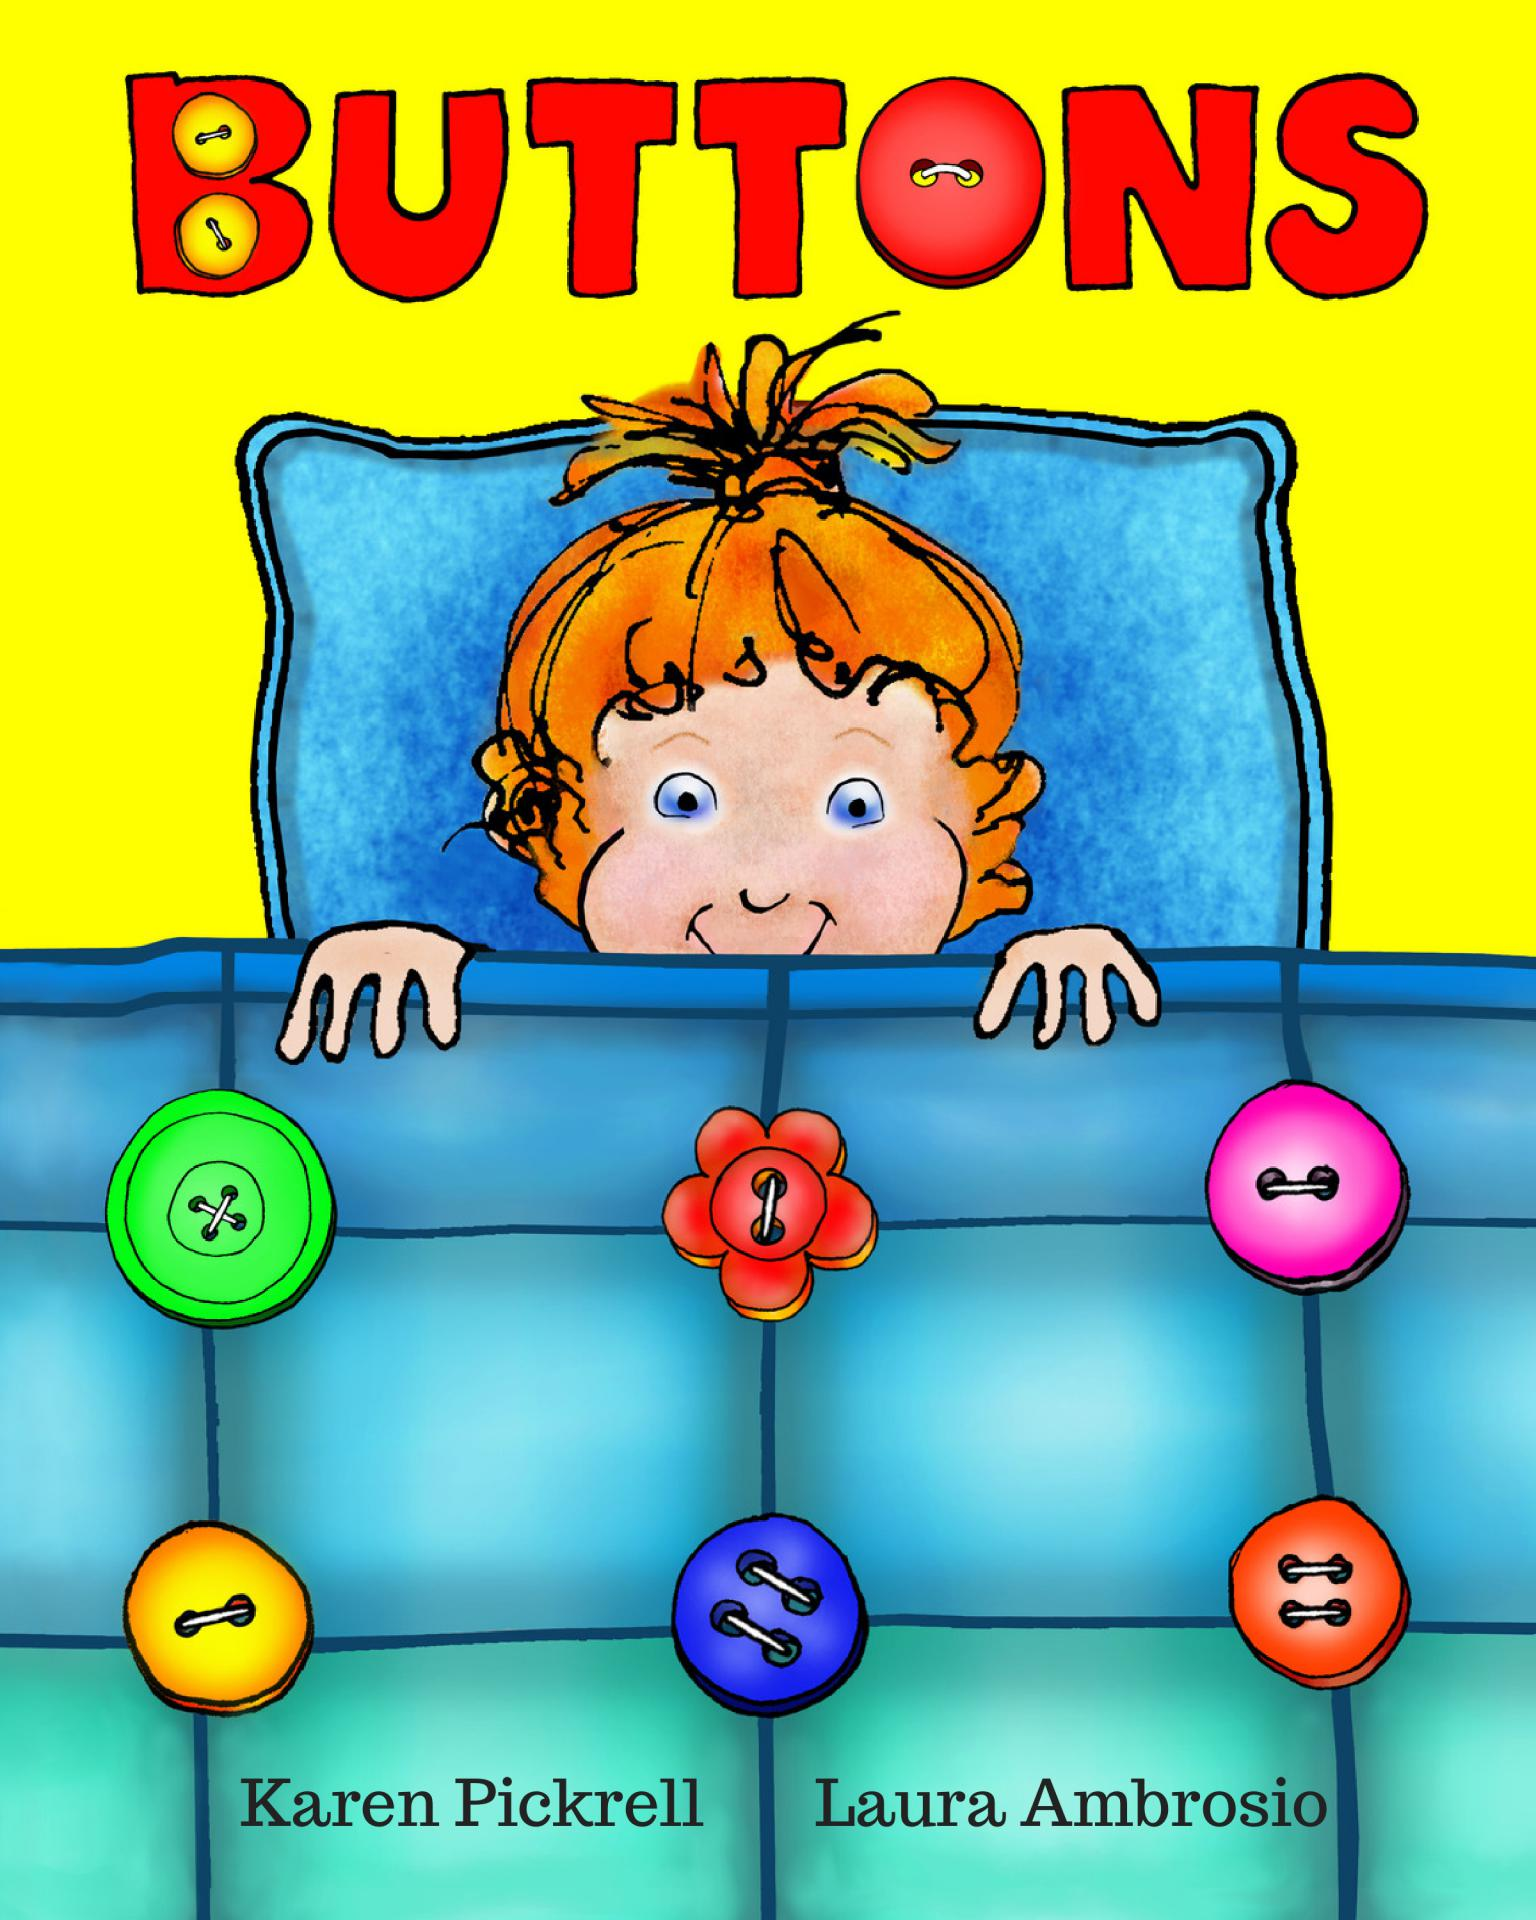 The Illustrator Behind Buttons